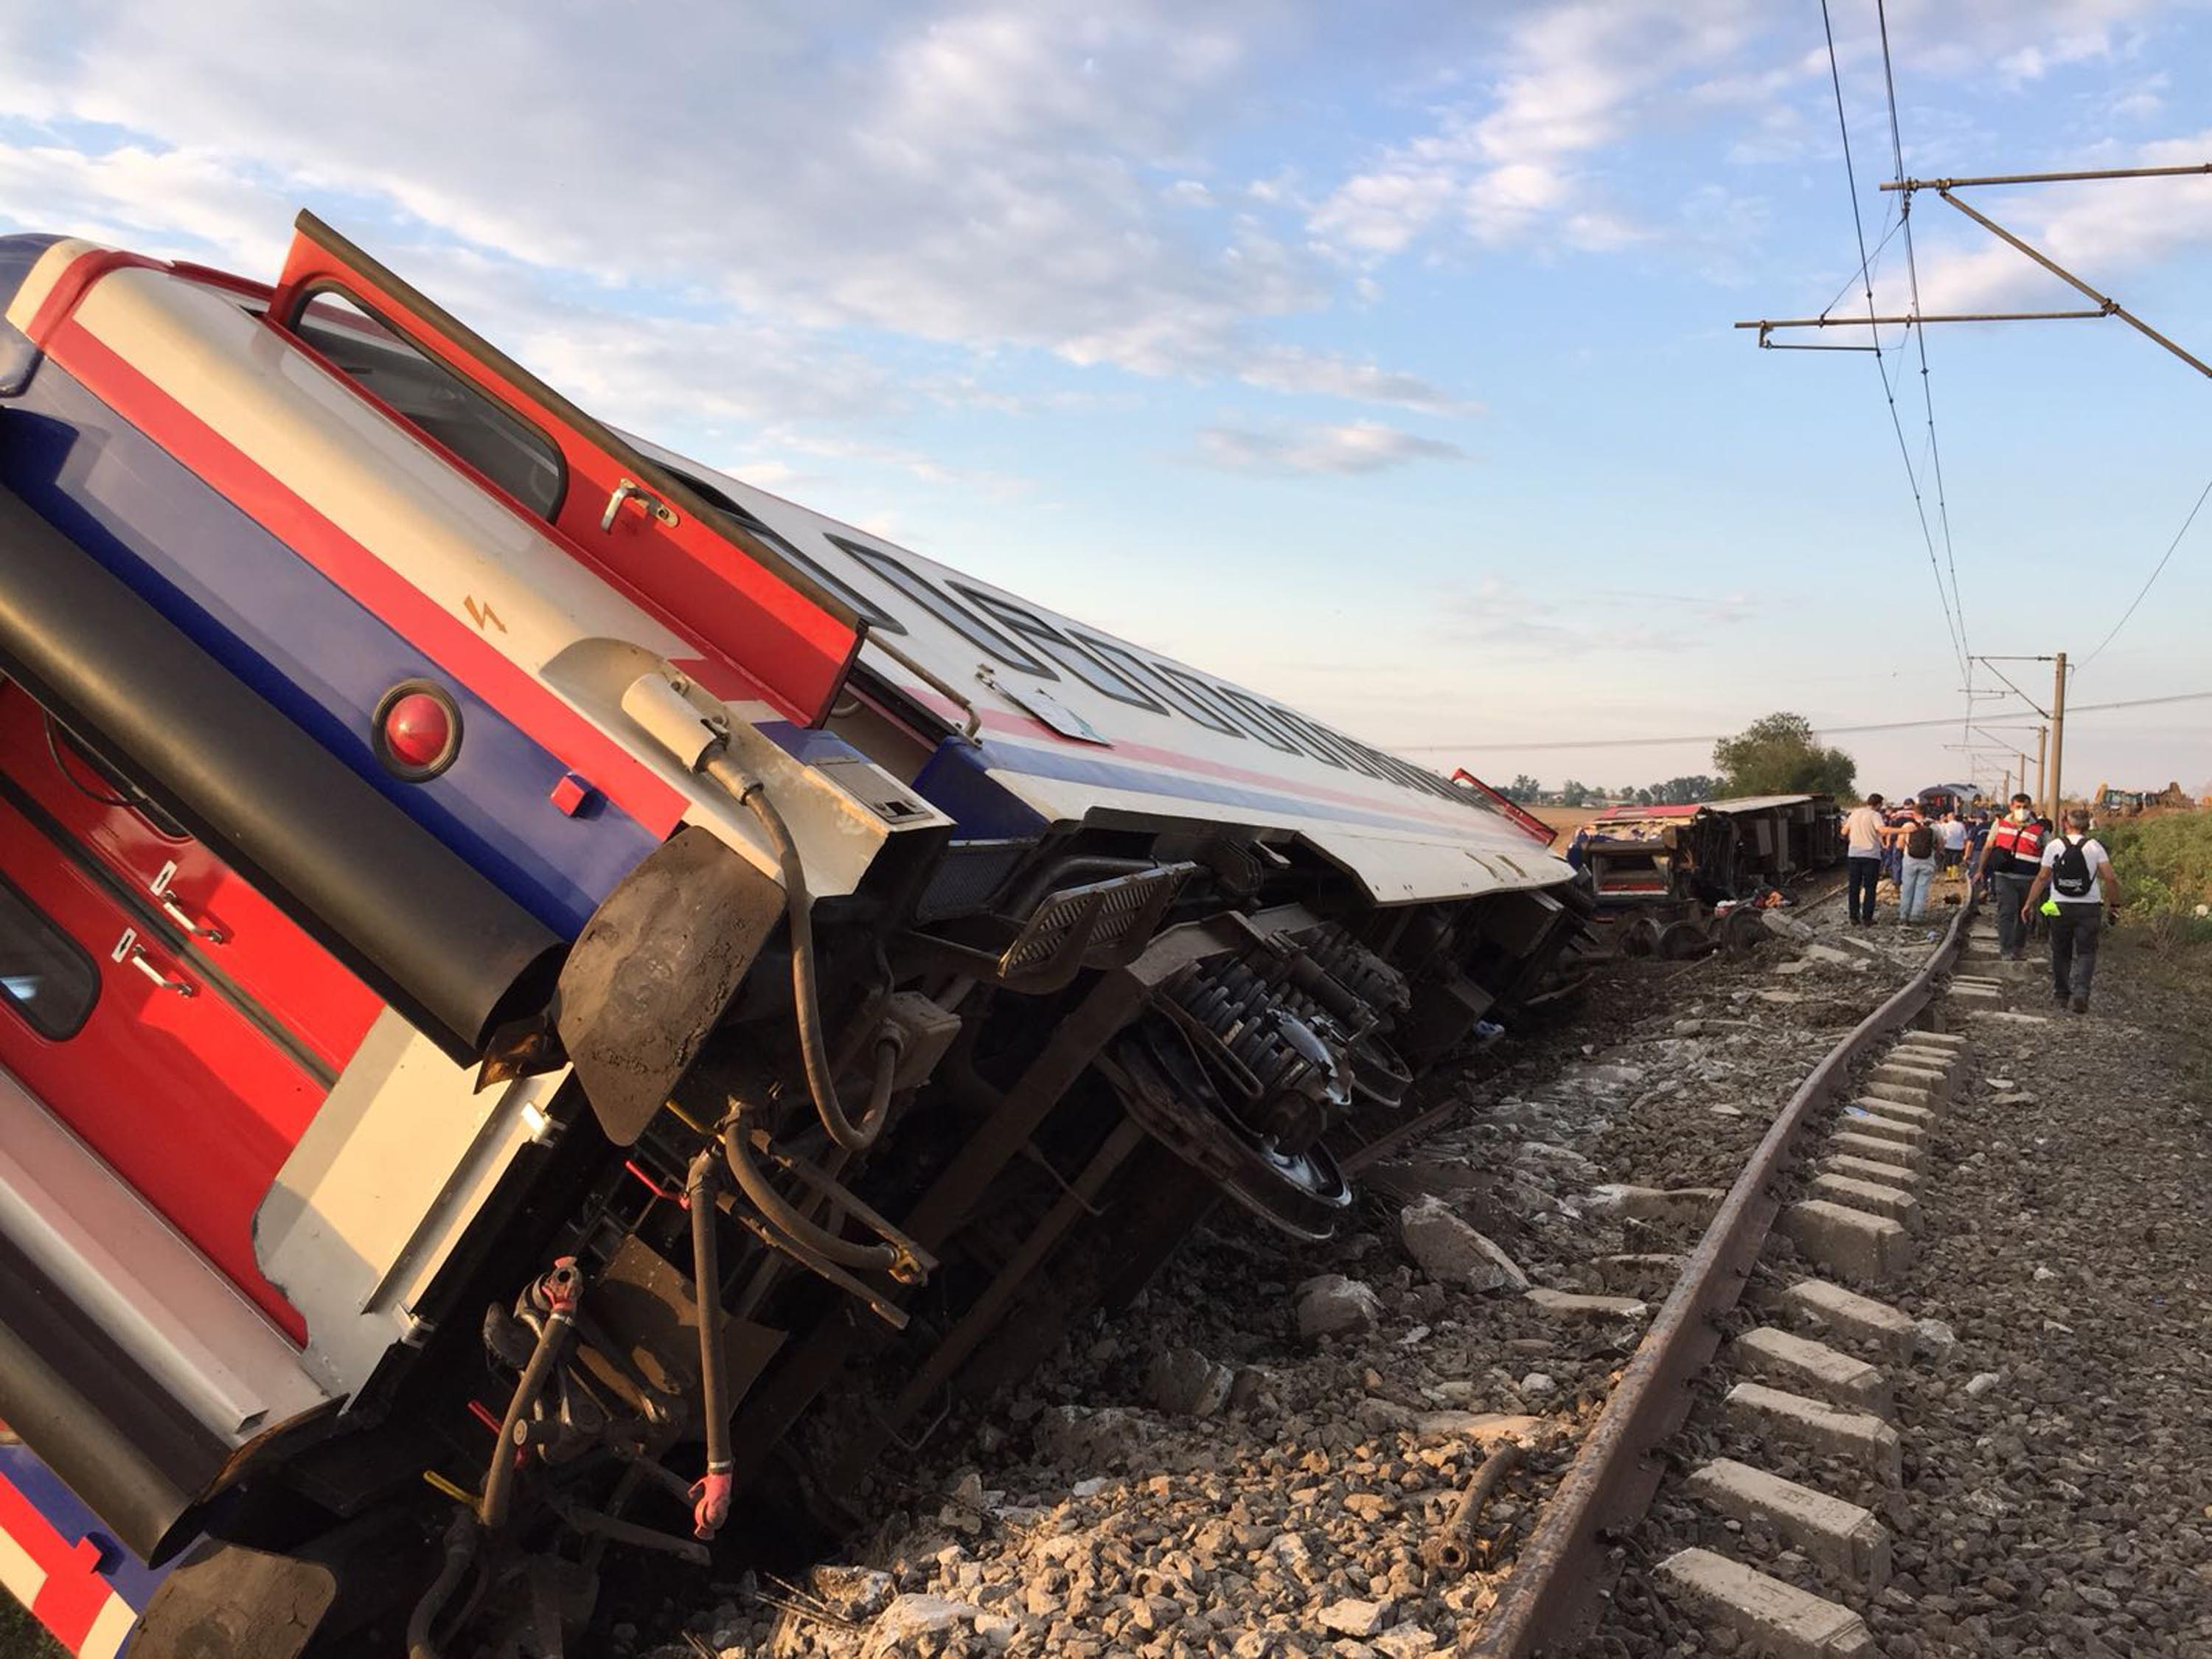 Train derailment in Turkey kills 24, injures more than 300